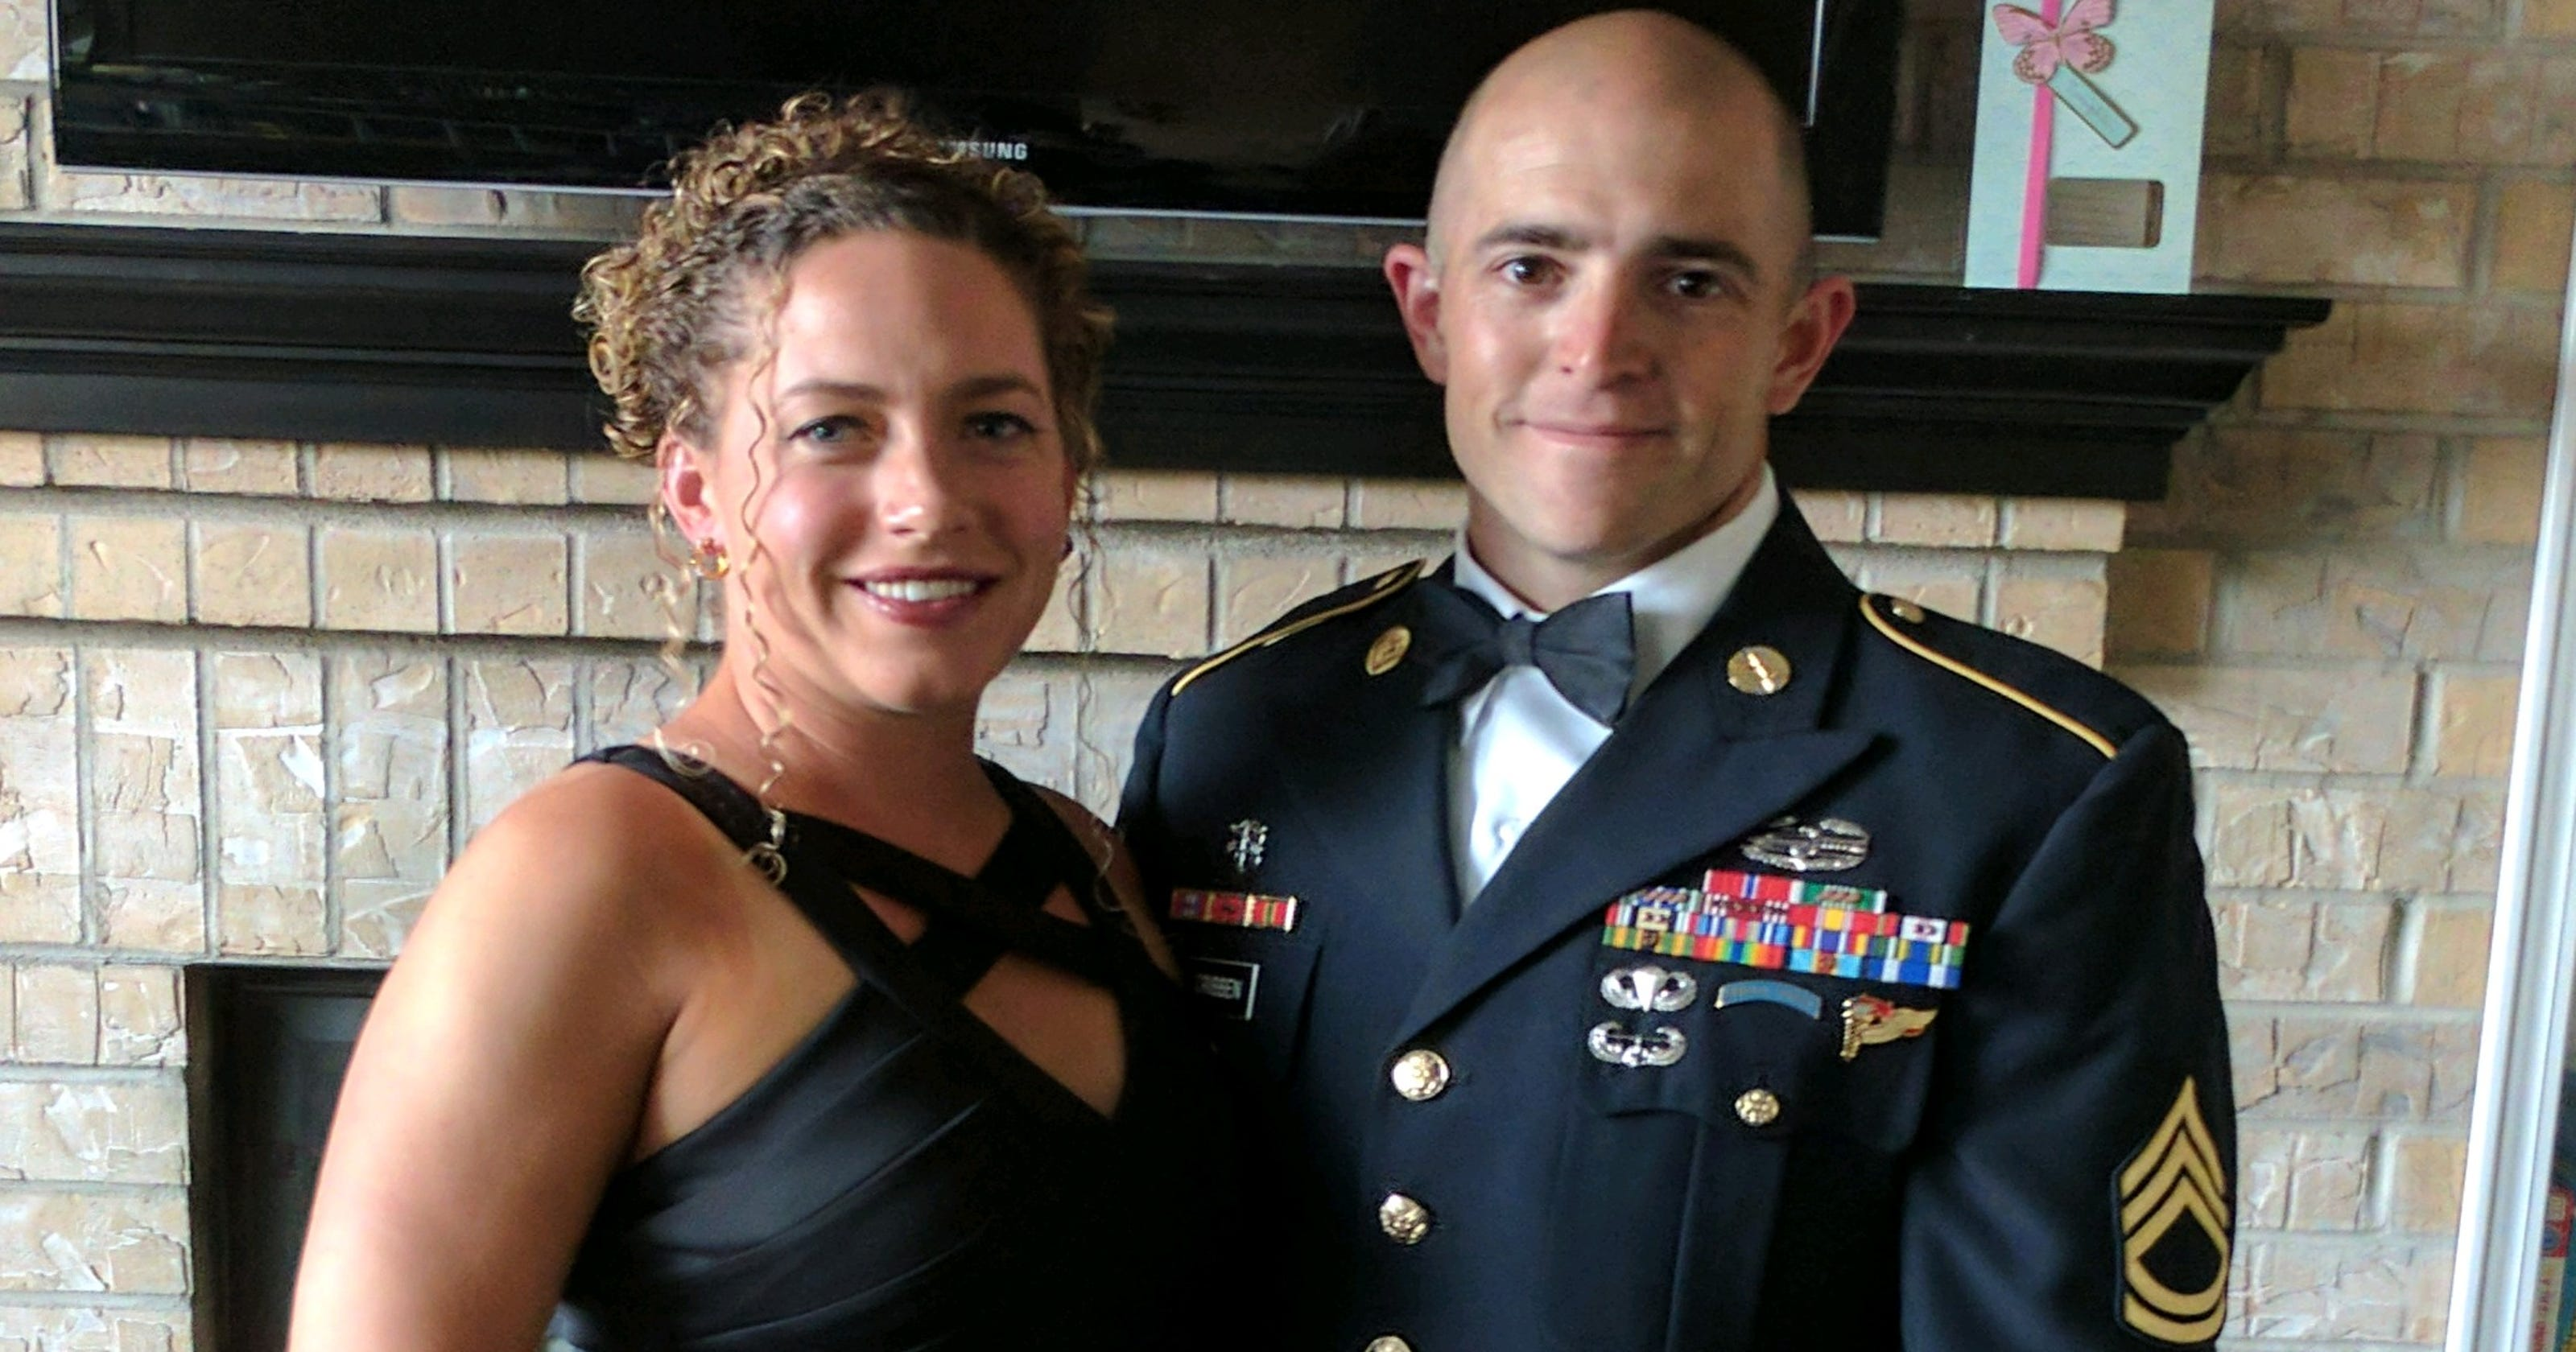 b26d9886bf54e Soldier from Simi Valley killed in Afghanistan